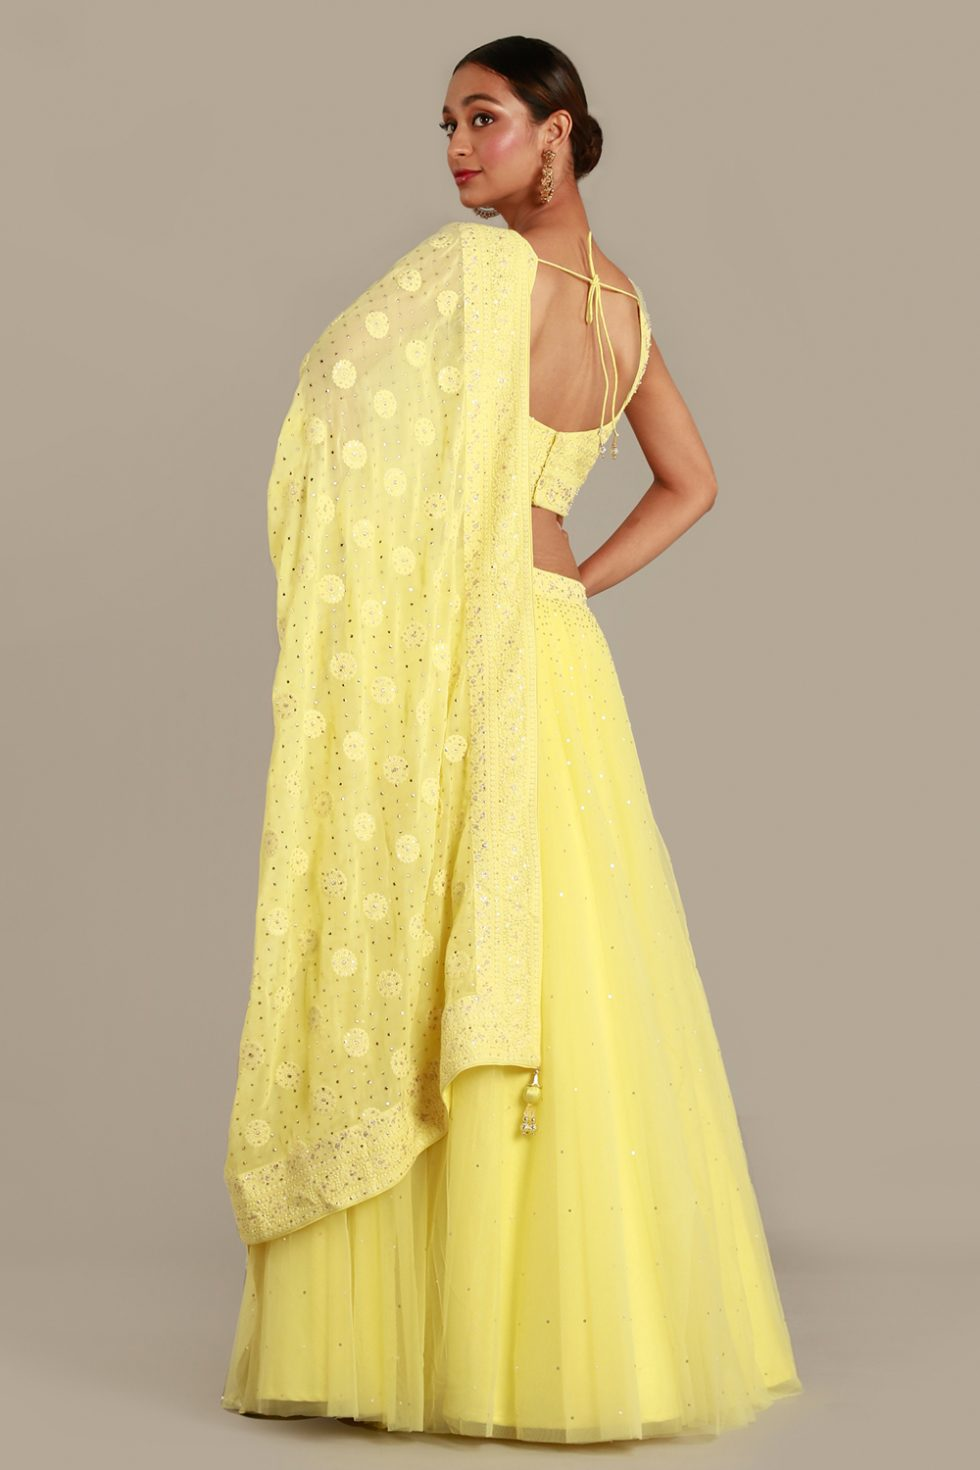 Sunshine yellow tulle lehenga set with matching dupatta and choli with thread work and gold and silver embellishments